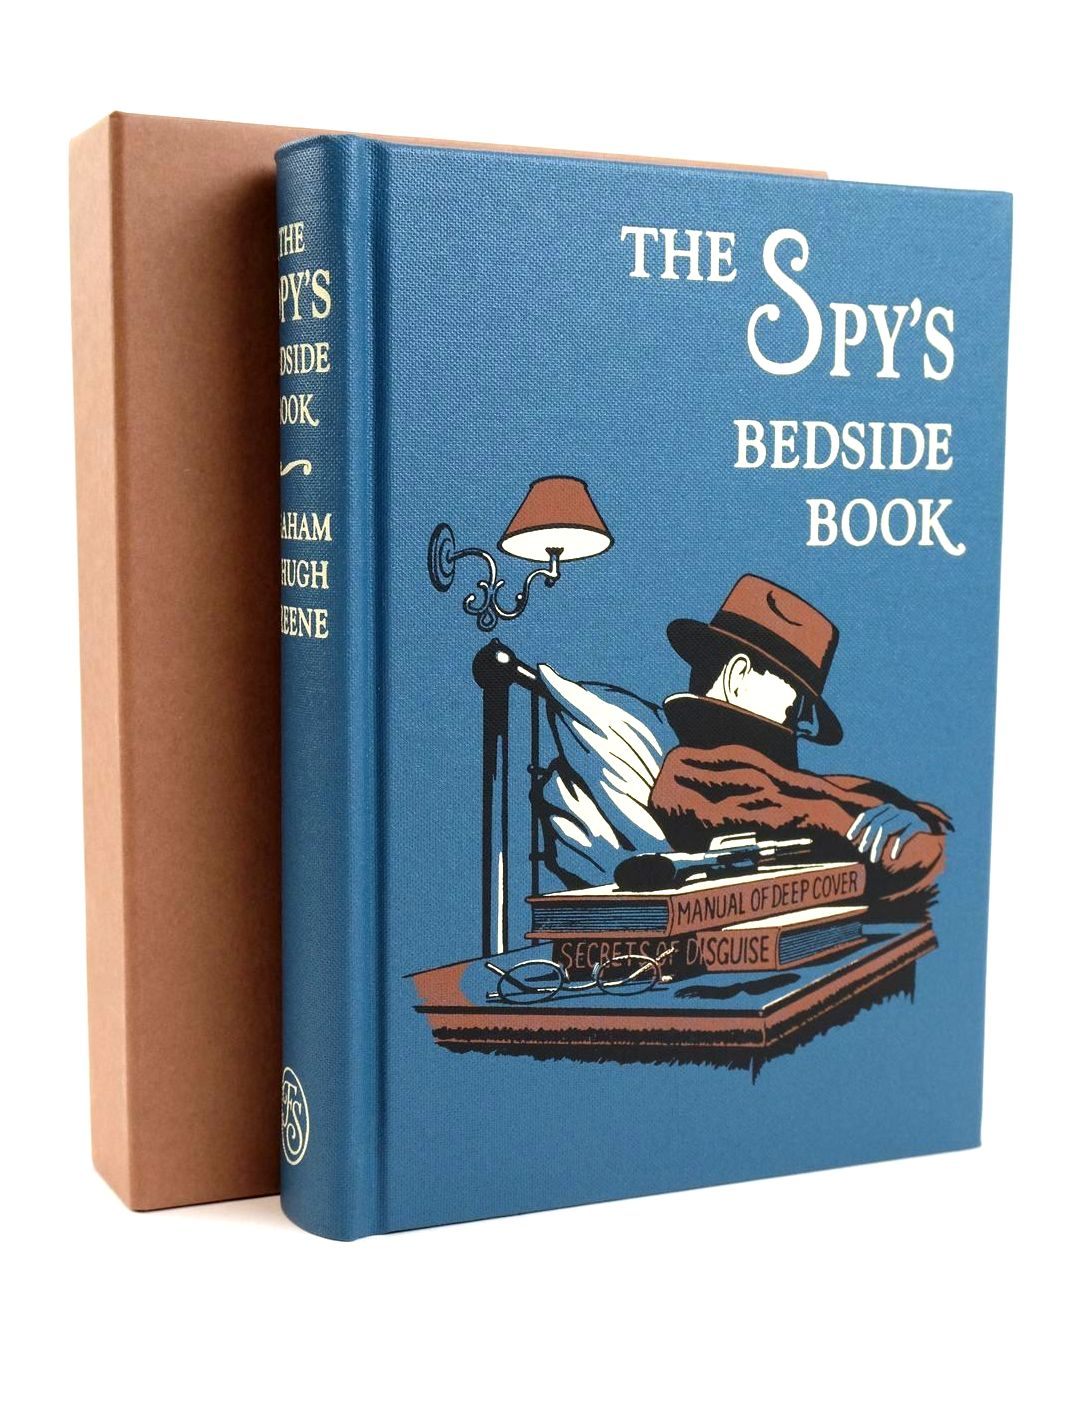 Photo of THE SPY'S BEDSIDE BOOK written by Greene, Graham Greene, Hugh Rimington, Stella illustrated by Hardcastle, Nick published by Folio Society (STOCK CODE: 1318854)  for sale by Stella & Rose's Books